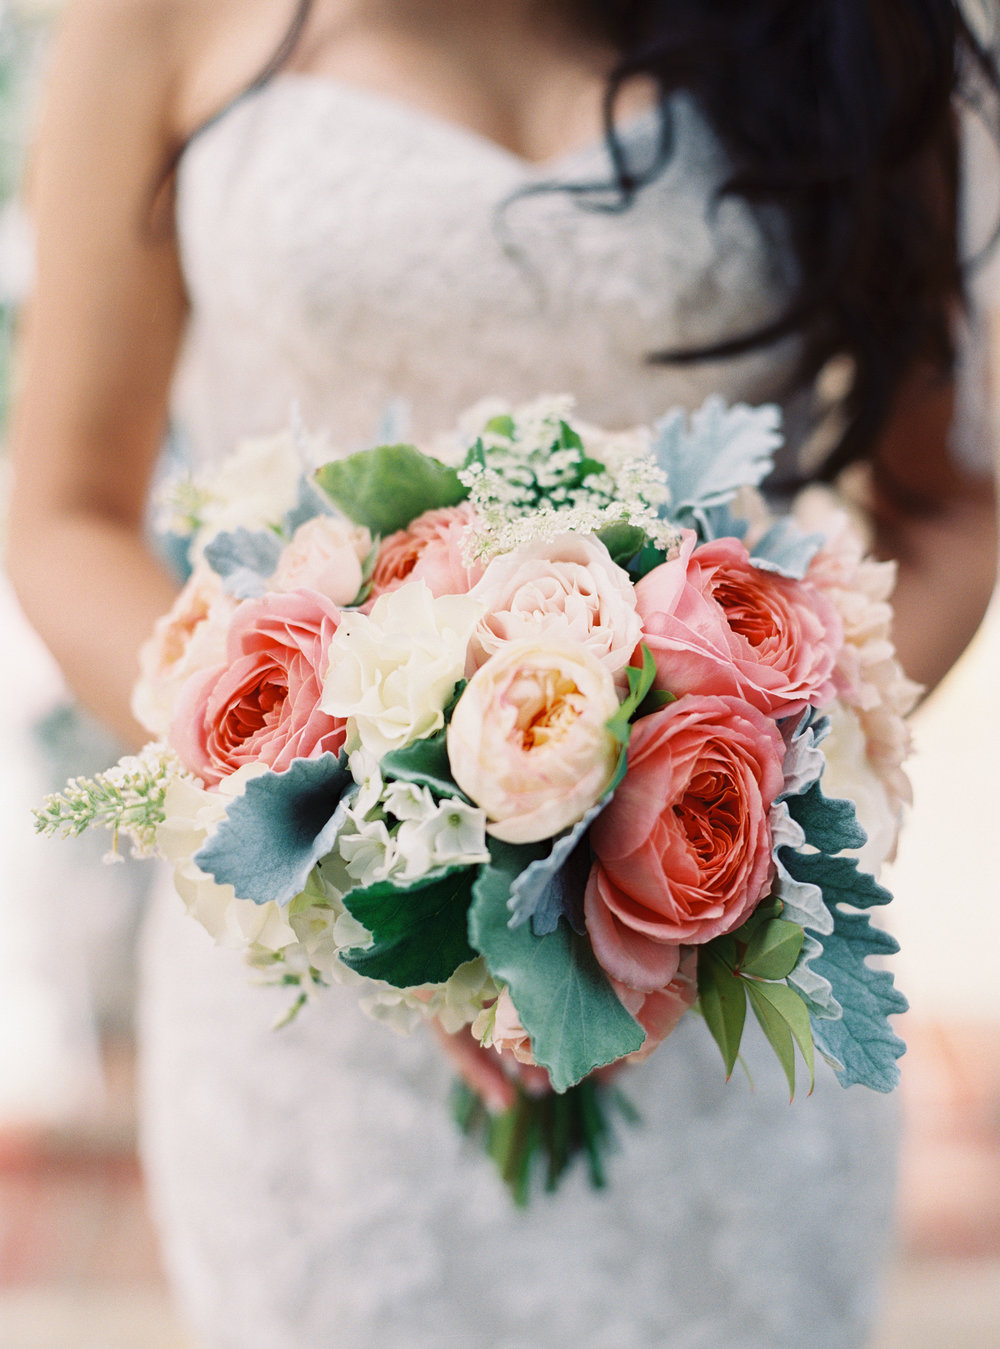 LindaTranPhotography-Flowerstory-Saratoga-wedding-bouquet.jpg